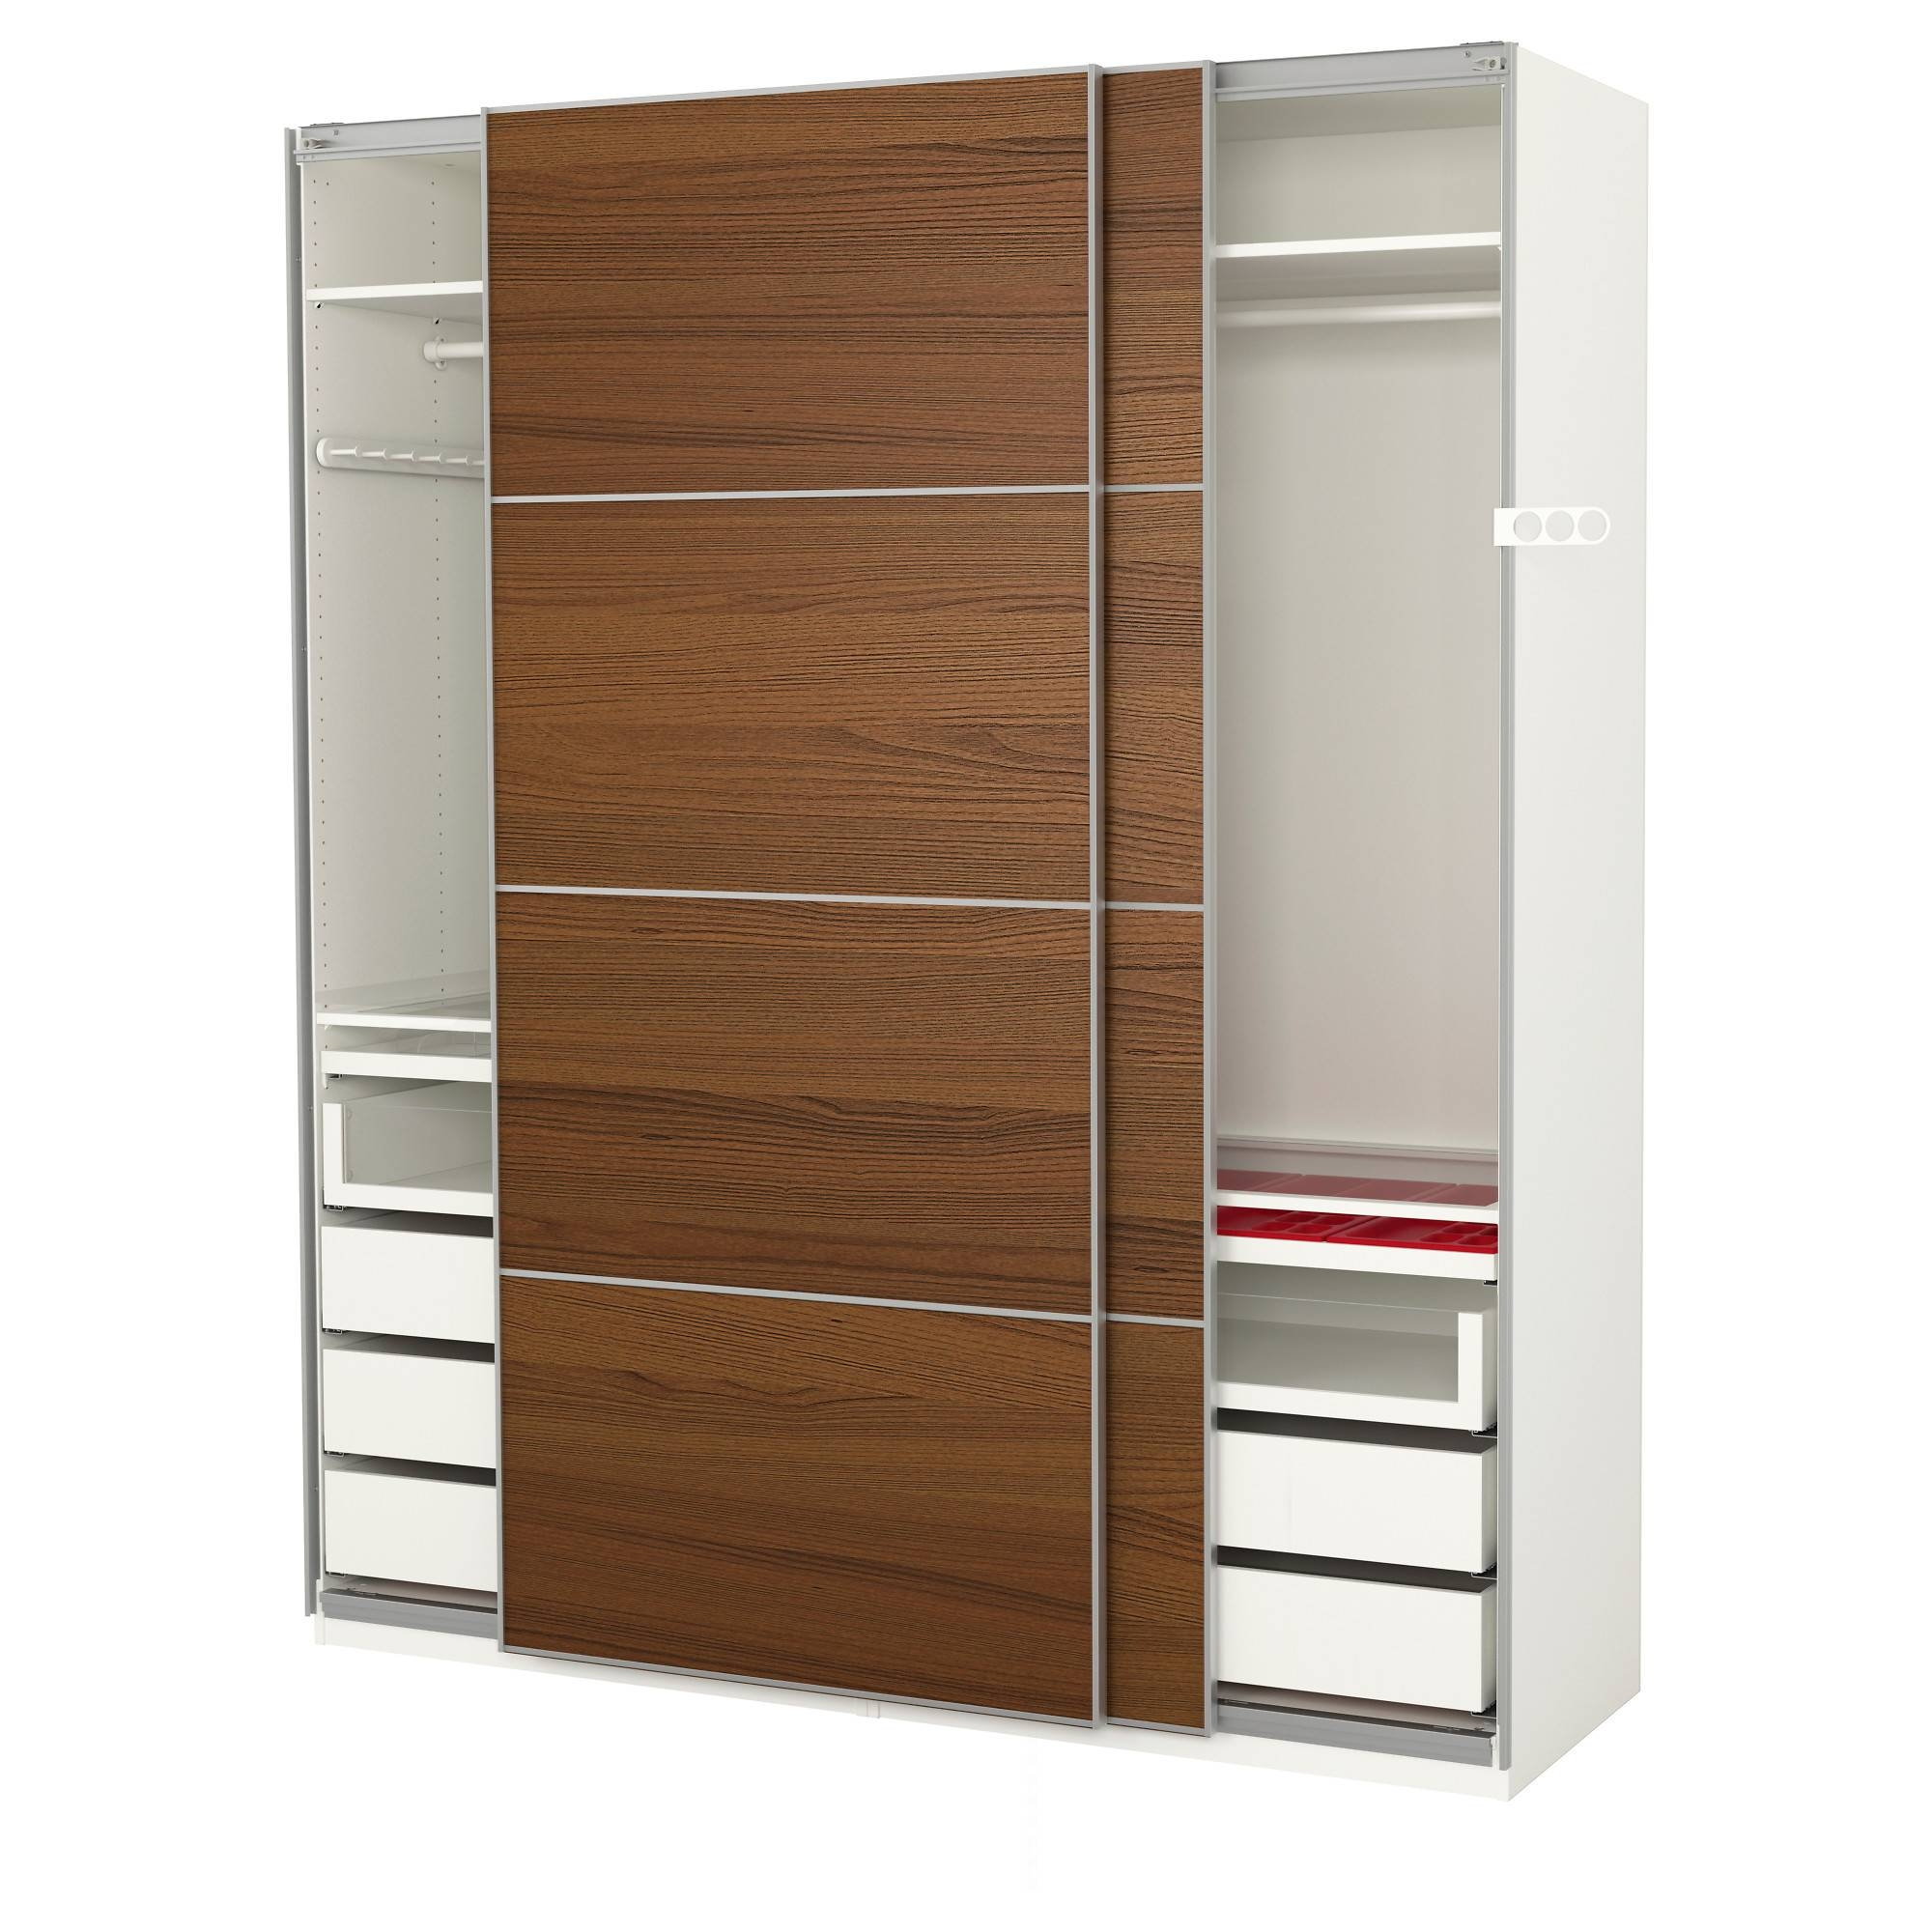 Wardrobes - Pax System - Ikea with regard to Wardrobes With Drawers and Shelves (Image 24 of 30)